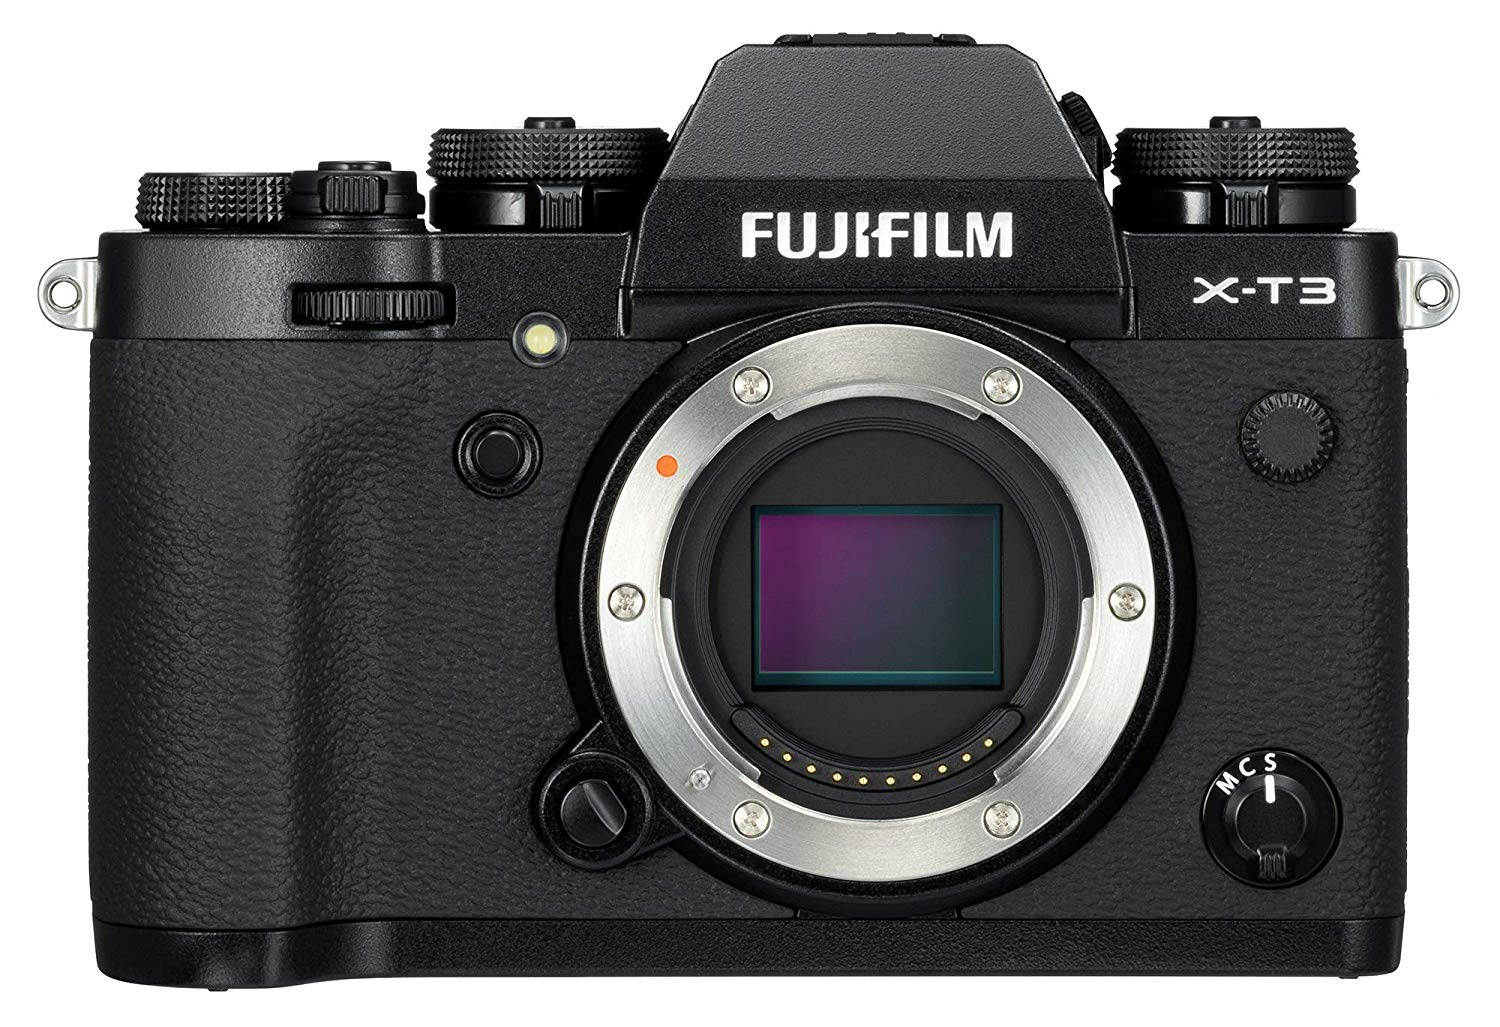 Fujifilm X-T3 Mirrorless Digital Camera Image